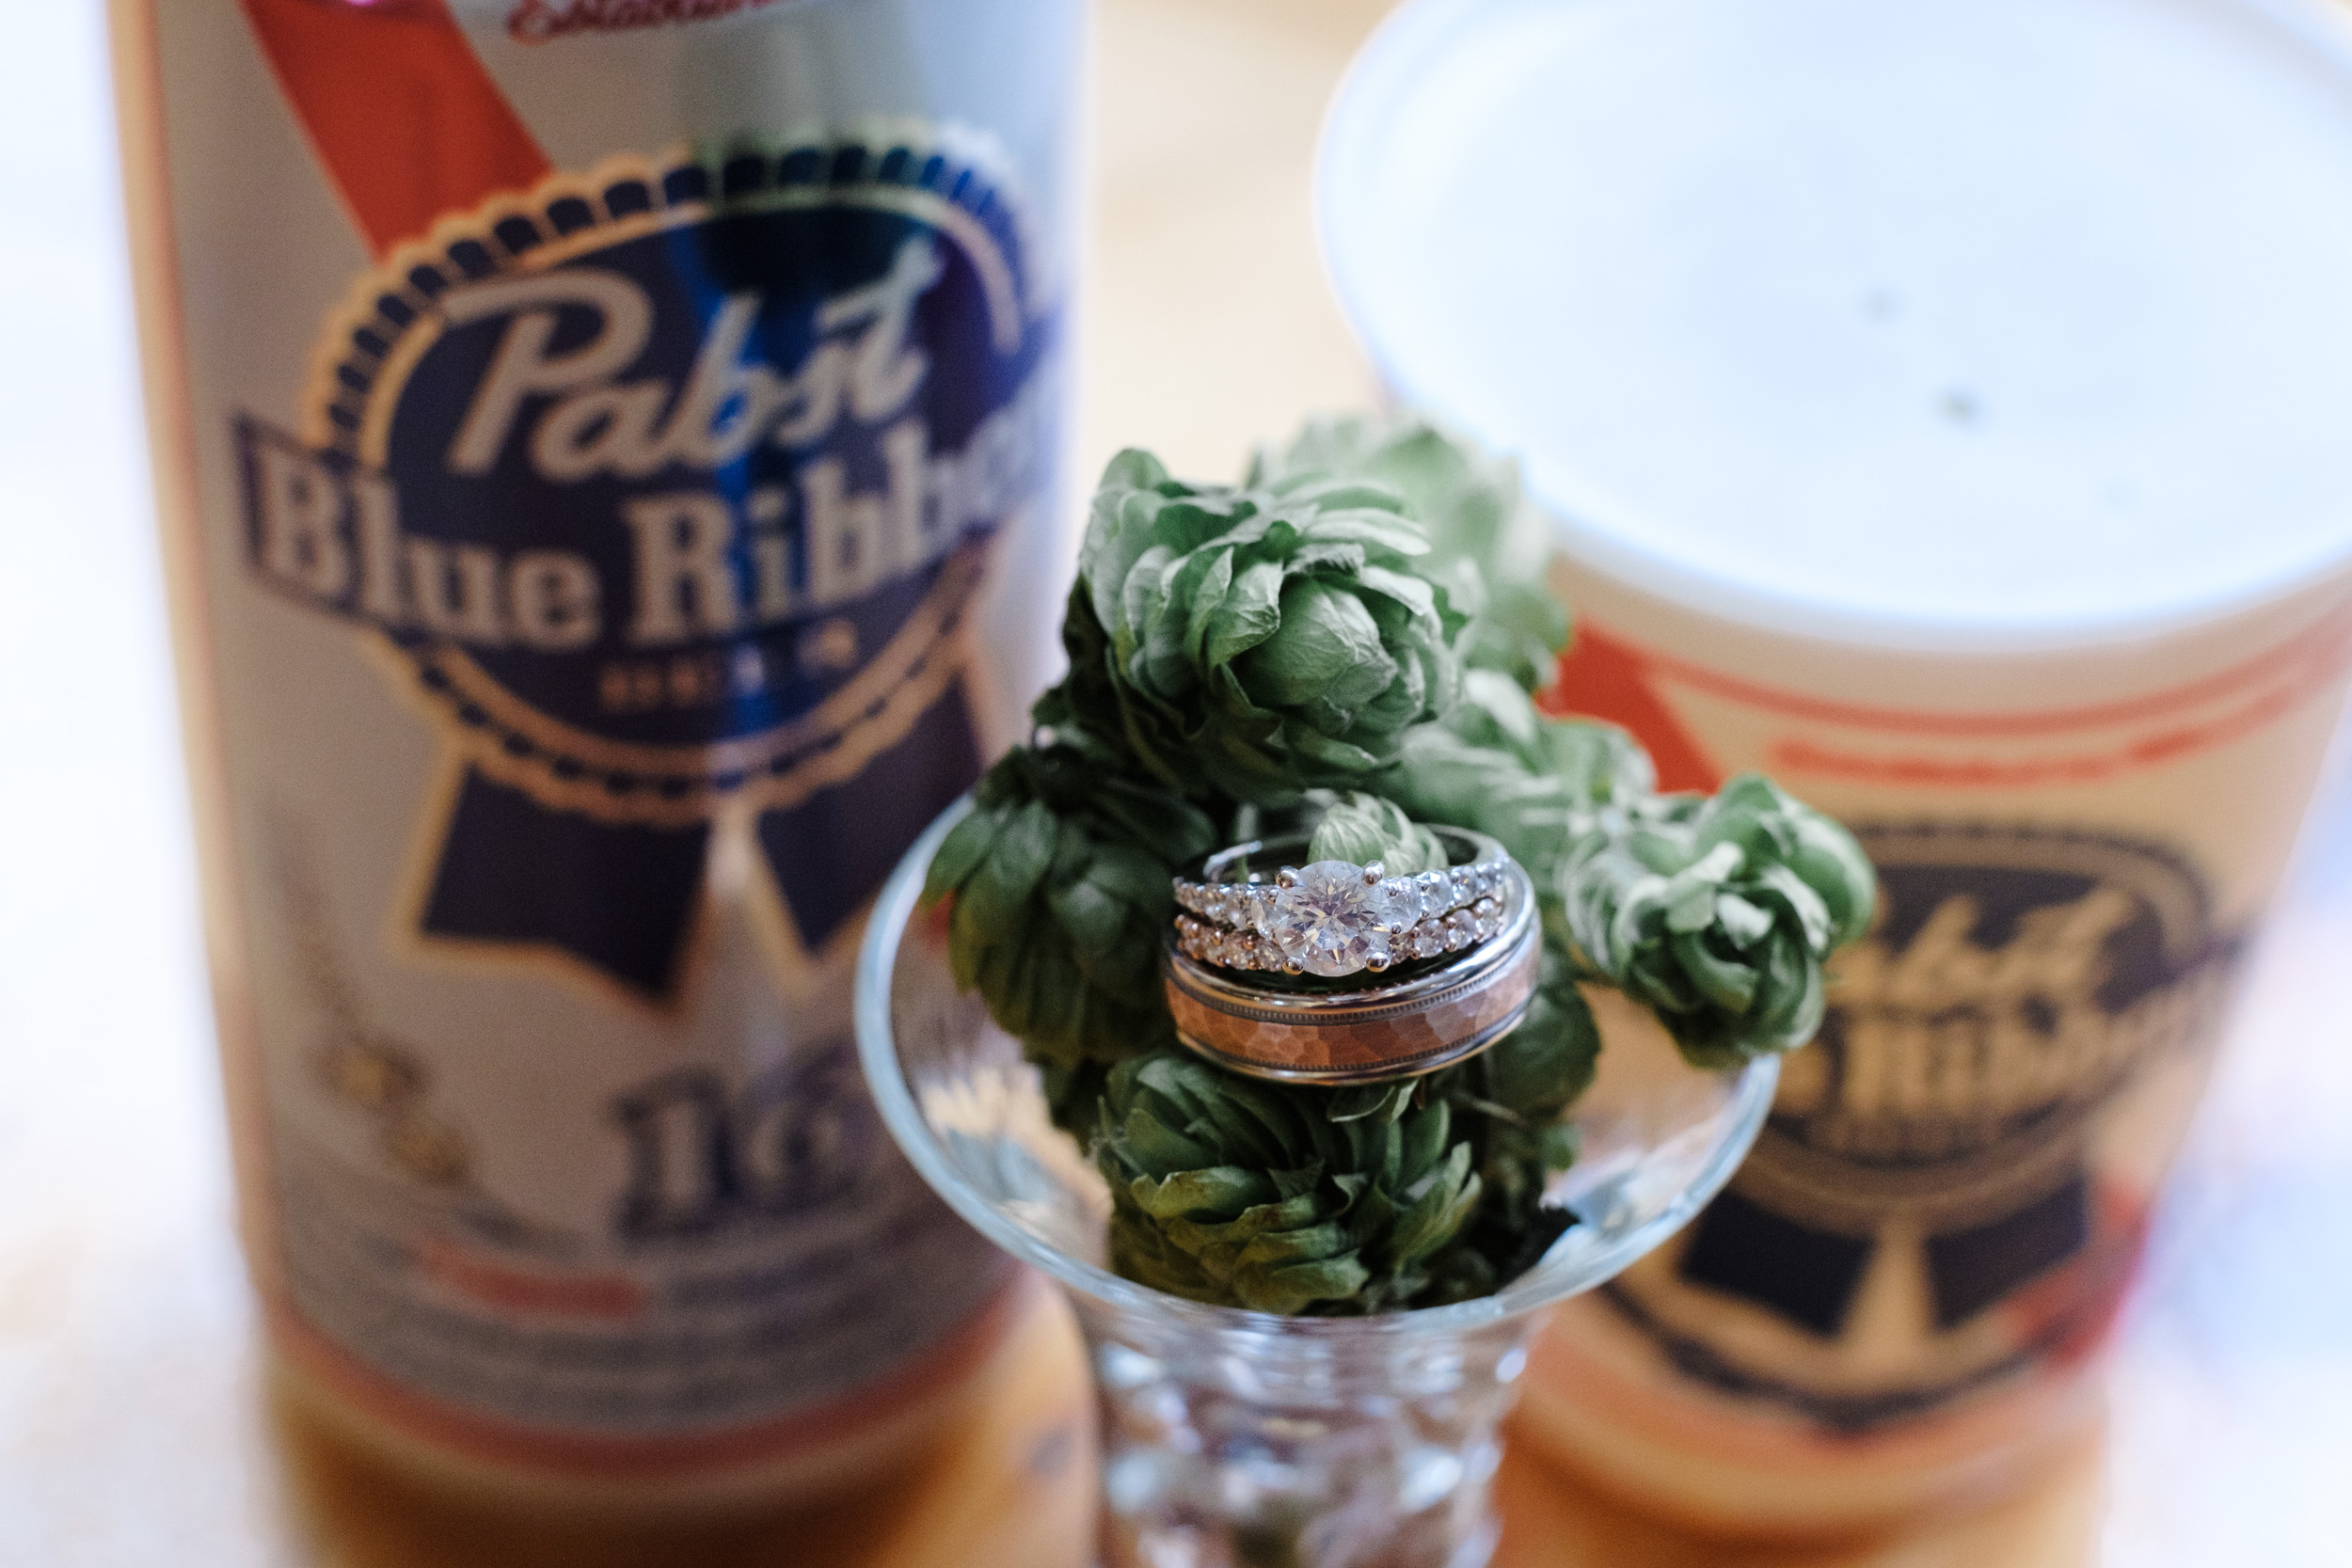 Beautiful rose gold wedding ring and bands resting on fresh hobs at Milwaukees, Pabst Best Place.